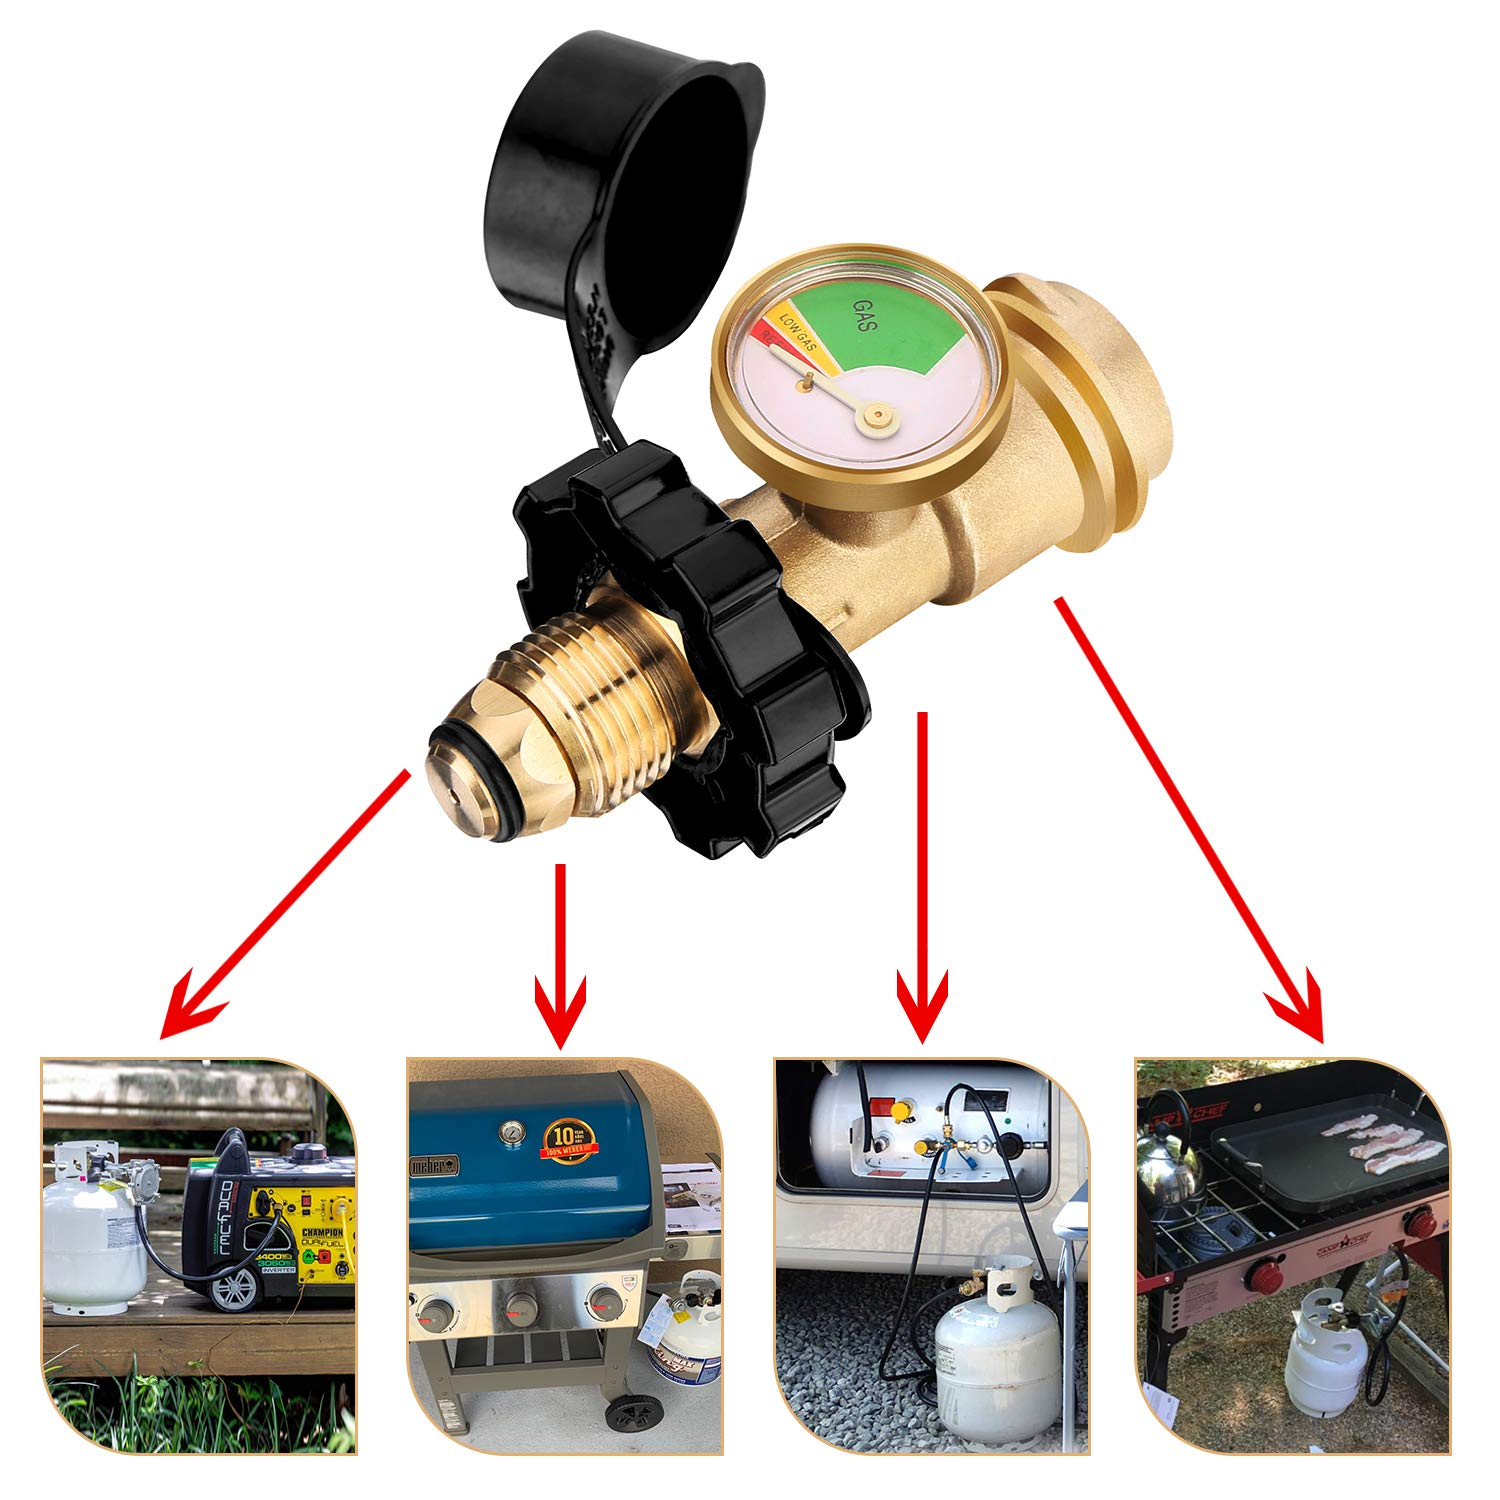 WADEO Upgraded POL Propane Tank Adapter with Gauge Converts POL LP Tank Service Valve to QCC1 // Type 1 Universal Propane Tank Gauge for Propane Cylinder BBQ Gas Grill Heater